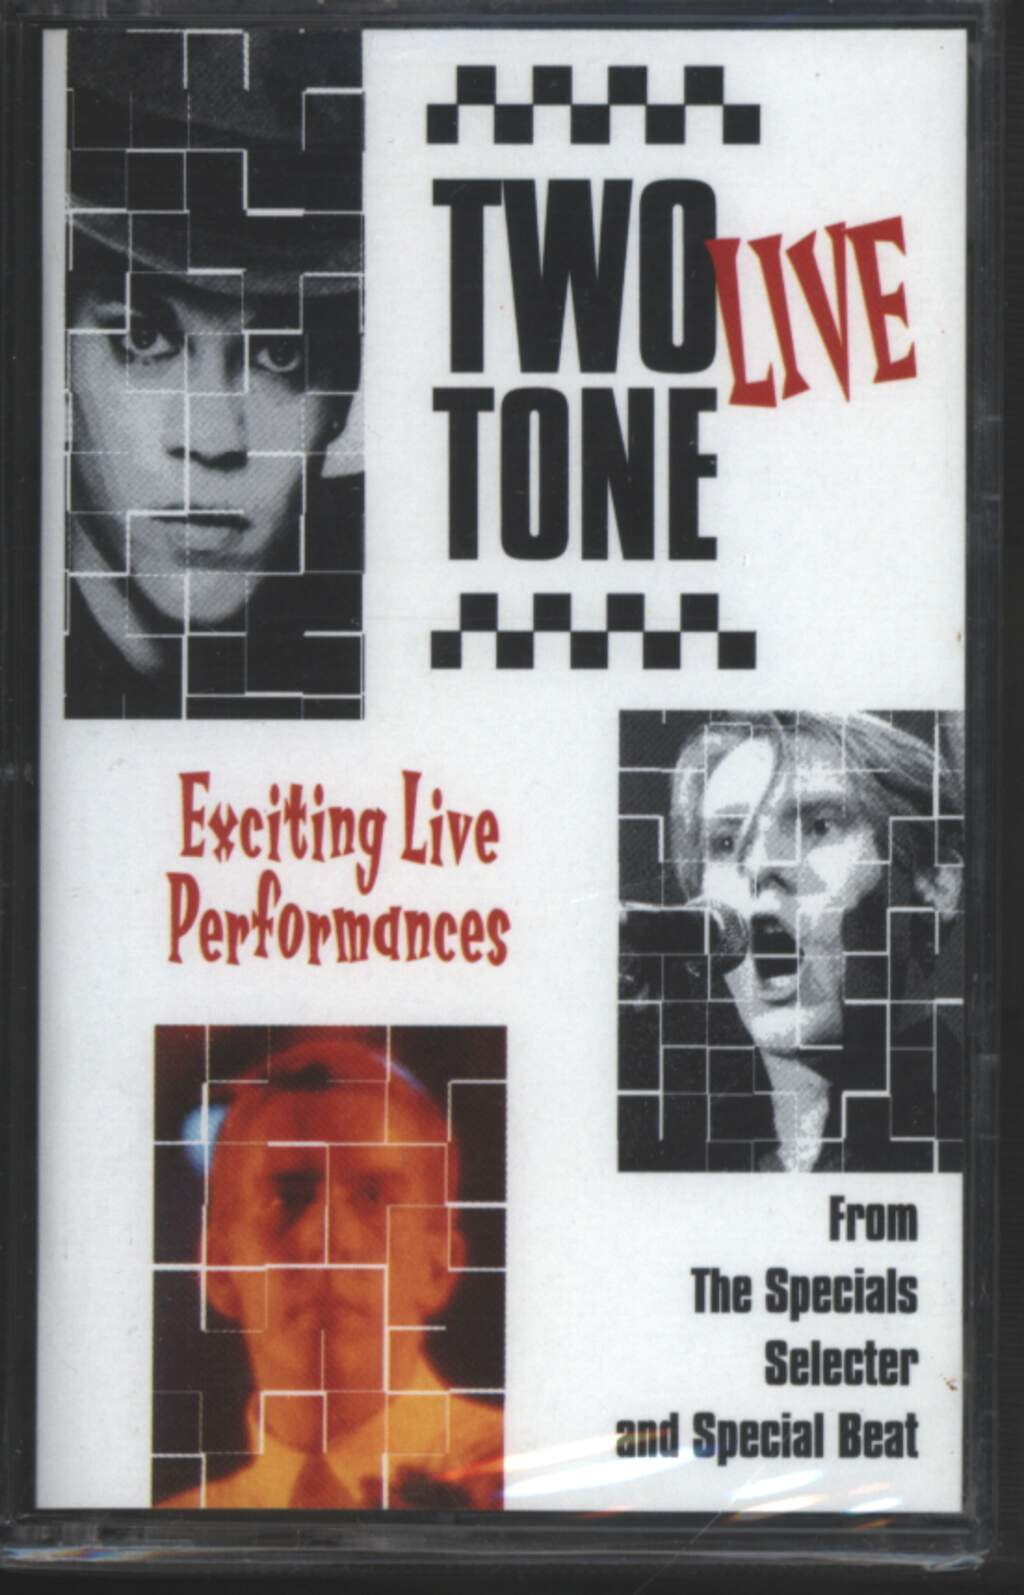 The Specials: Two Tone Live. Exciting Live Performances., Tape